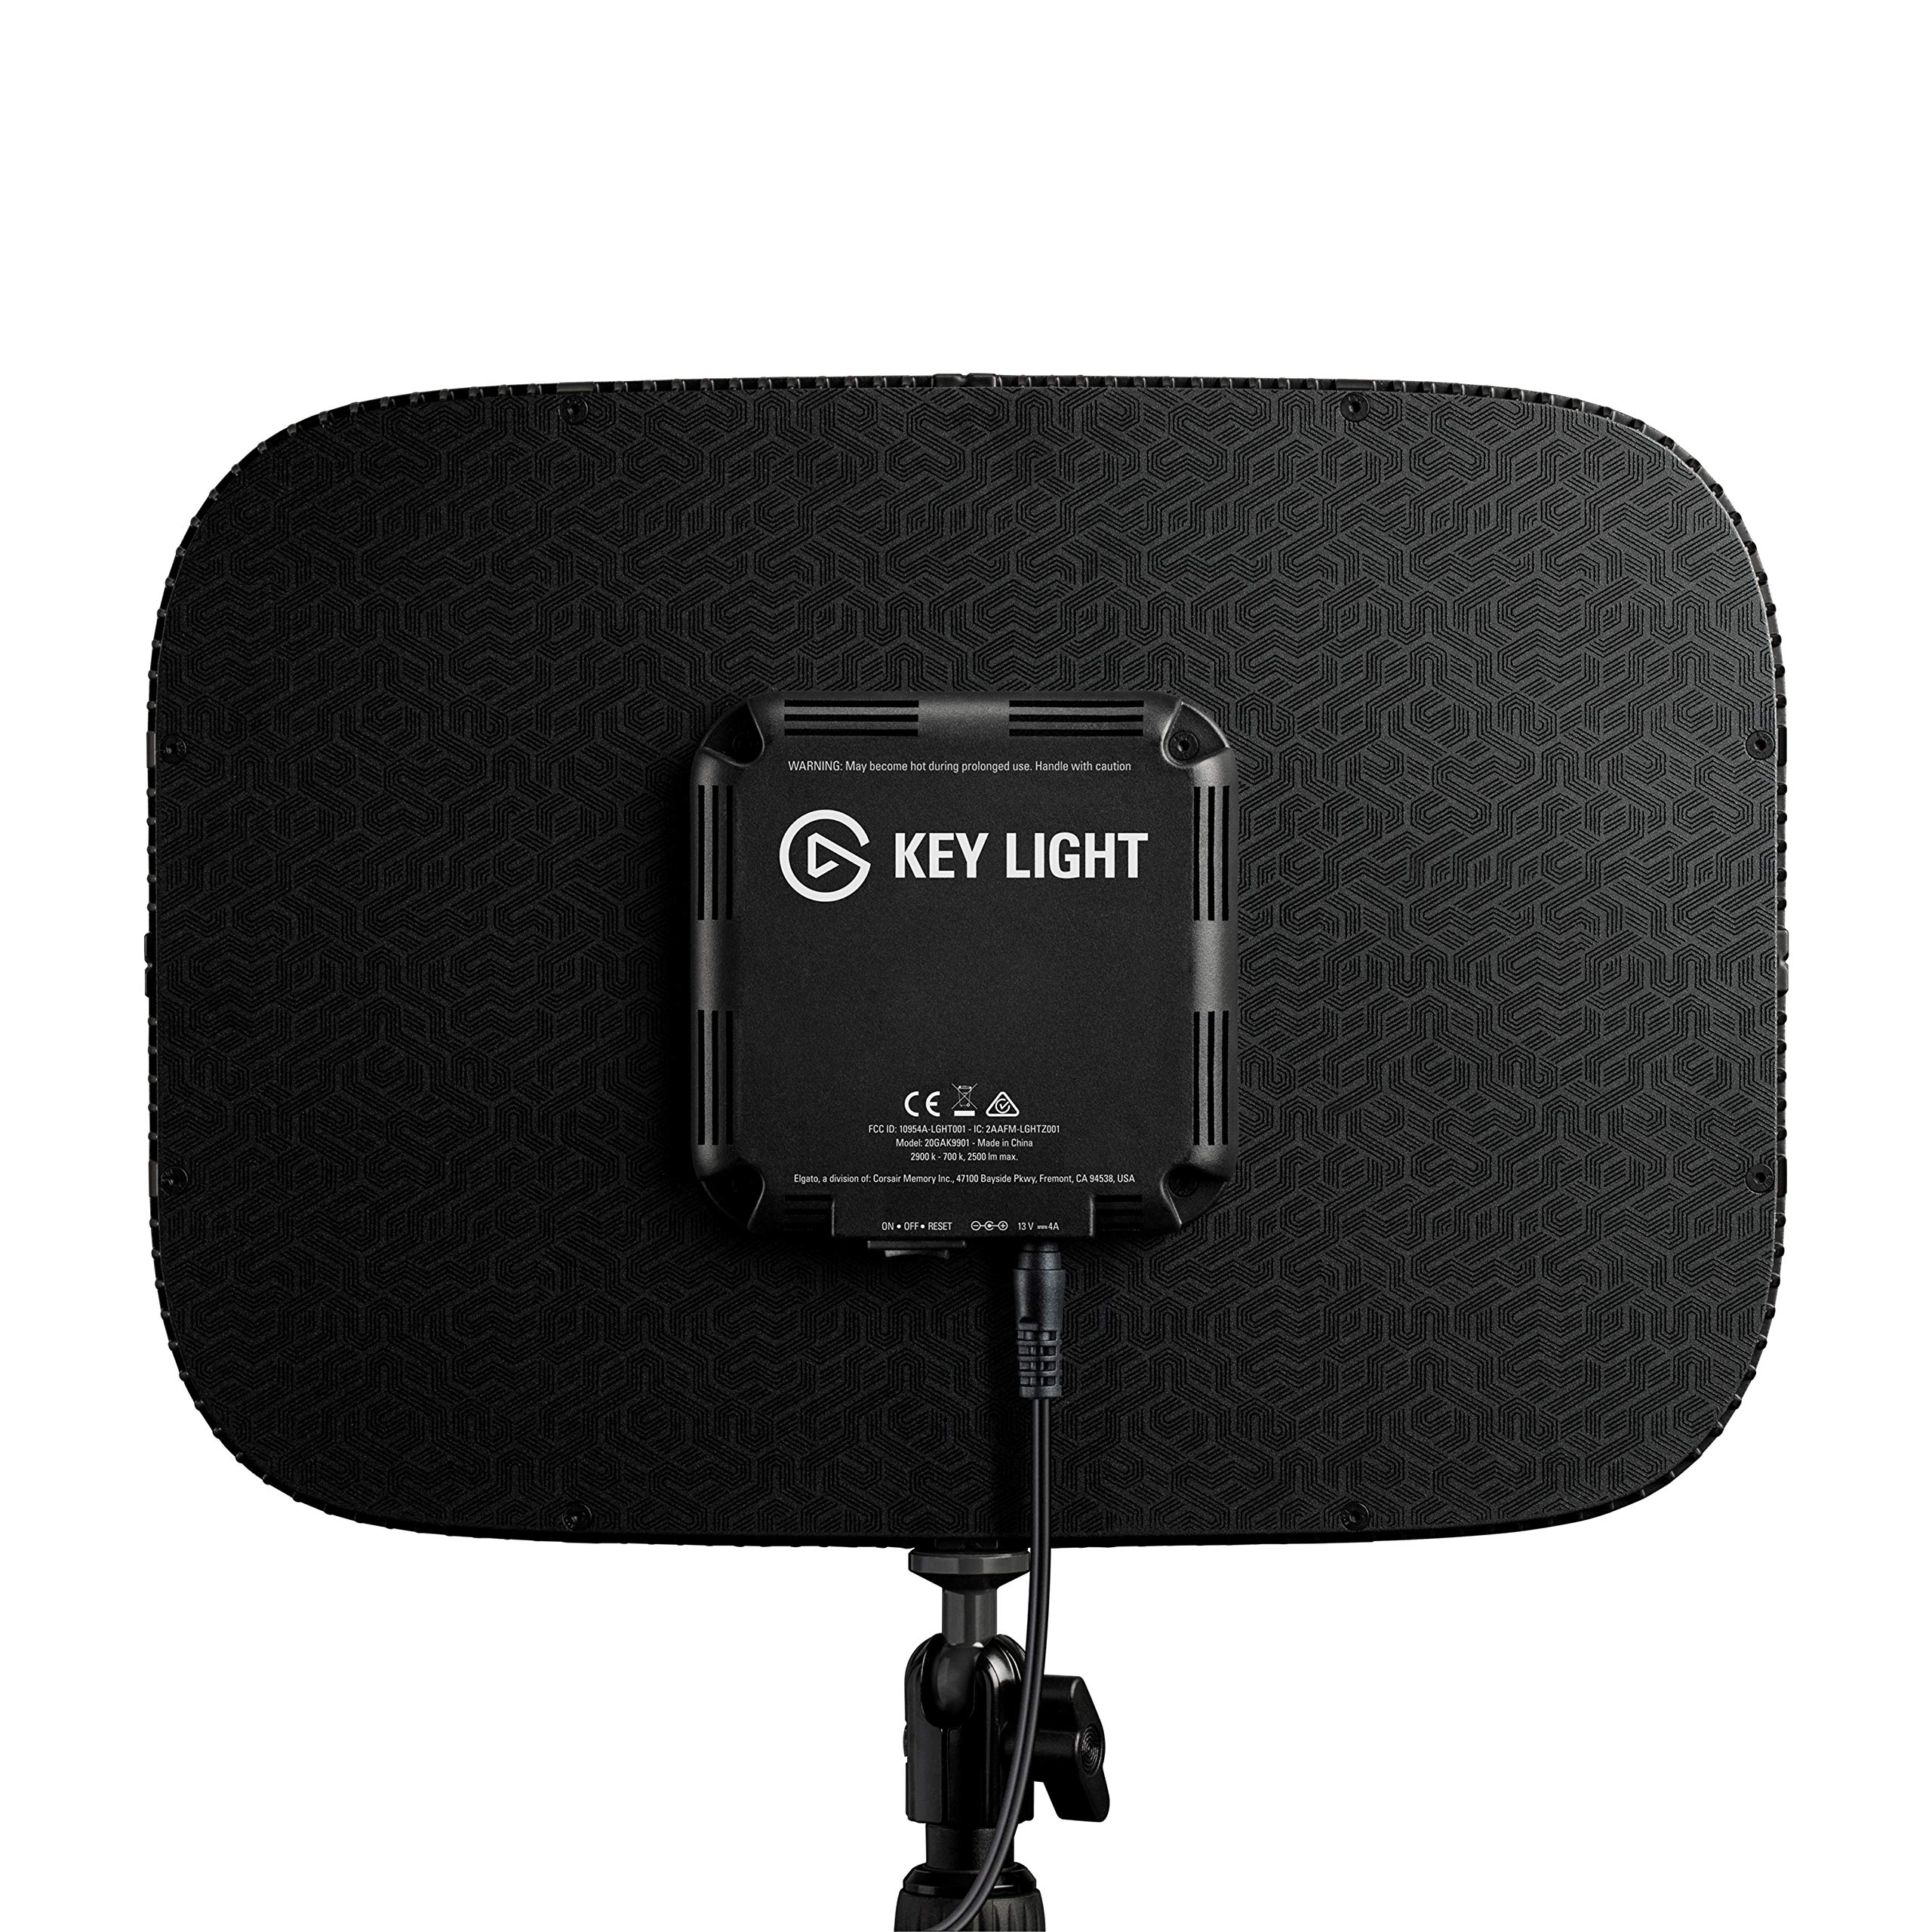 Elgato Key Light - Professional Studio LED Panel with 2500 Lumens, Color Adjustable, App-Enabled - PC and Mac by Corsair (Image #3)